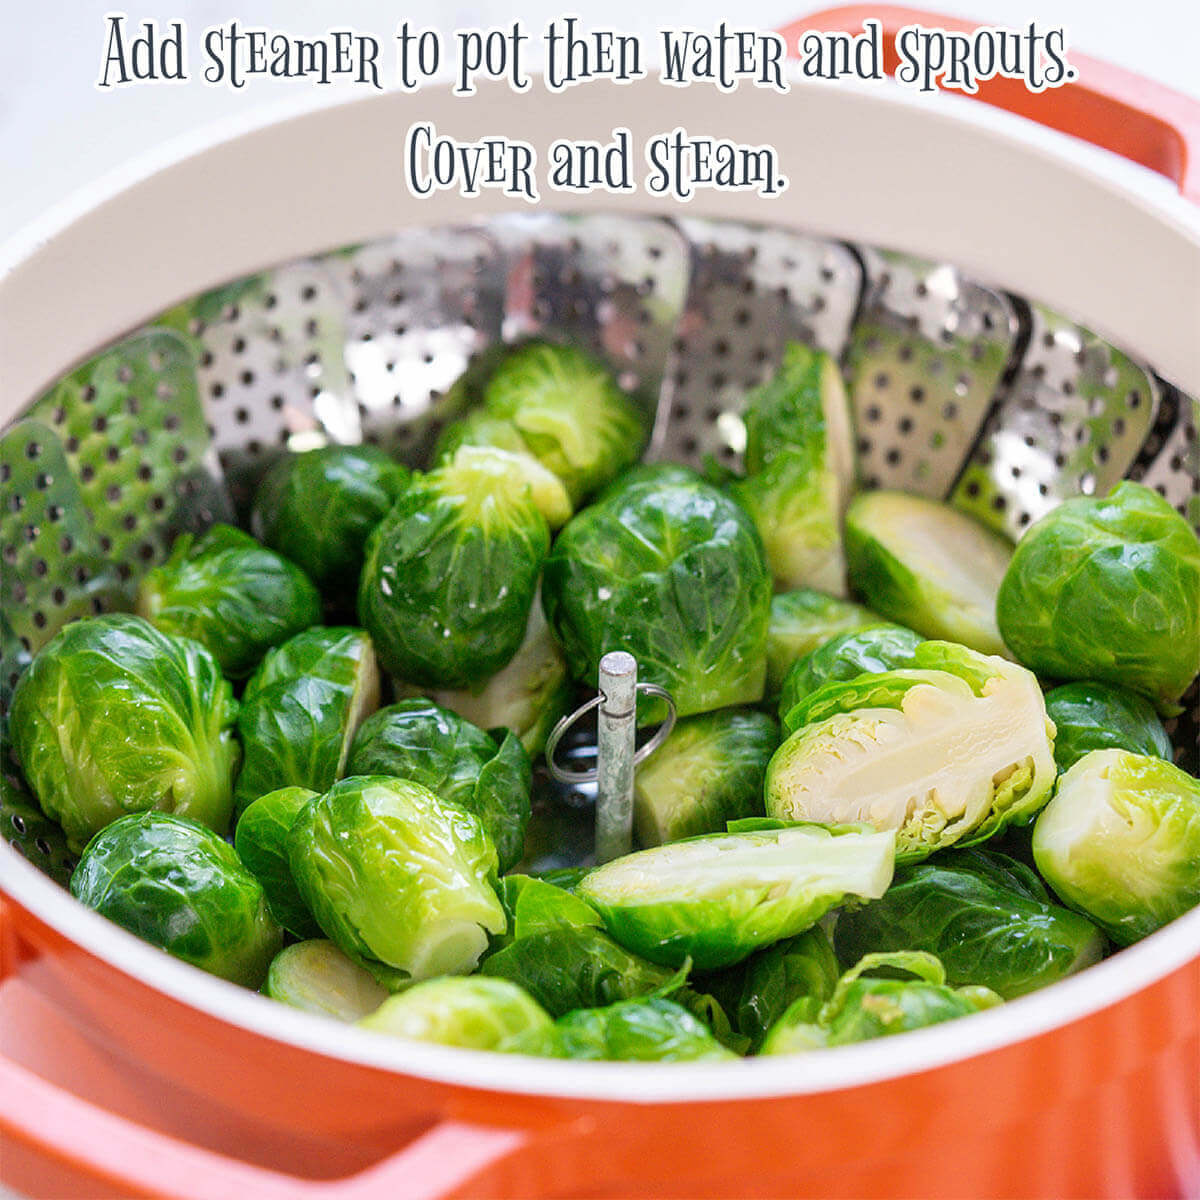 Steamed Brussels sprouts in pot.